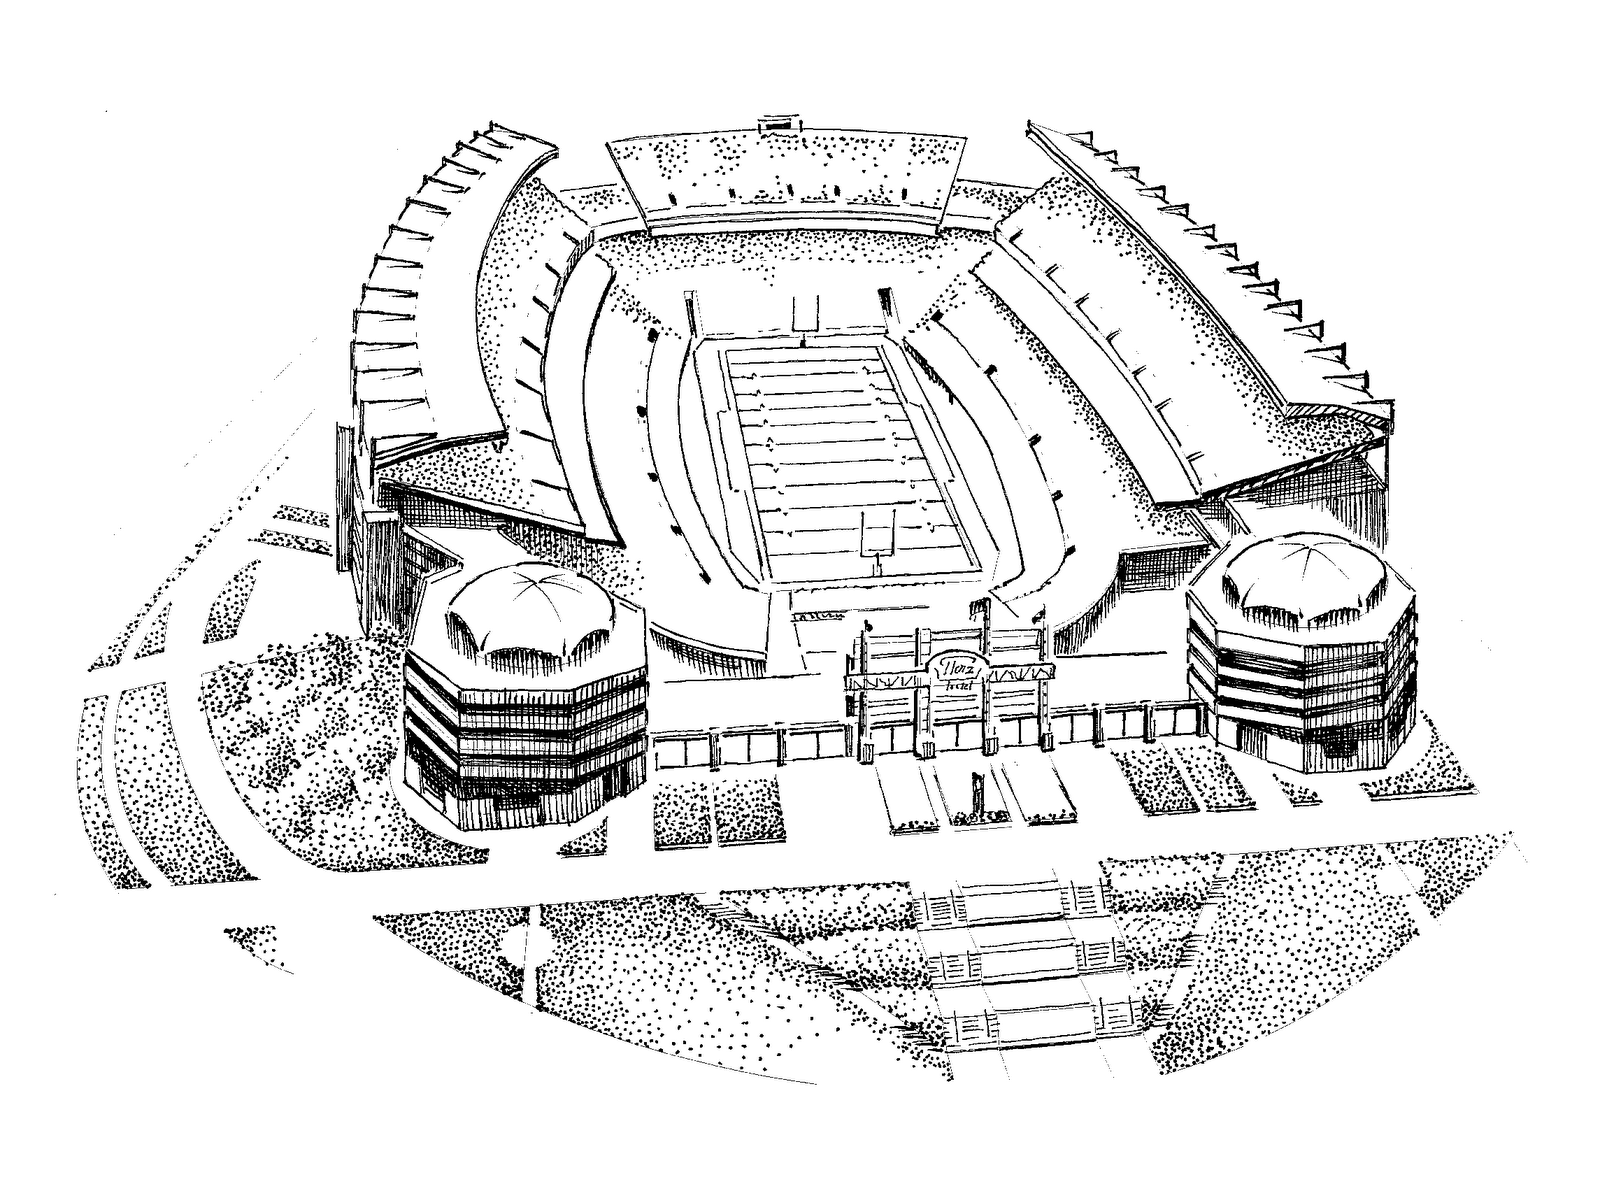 nfl stadium coloring pages - photo#19